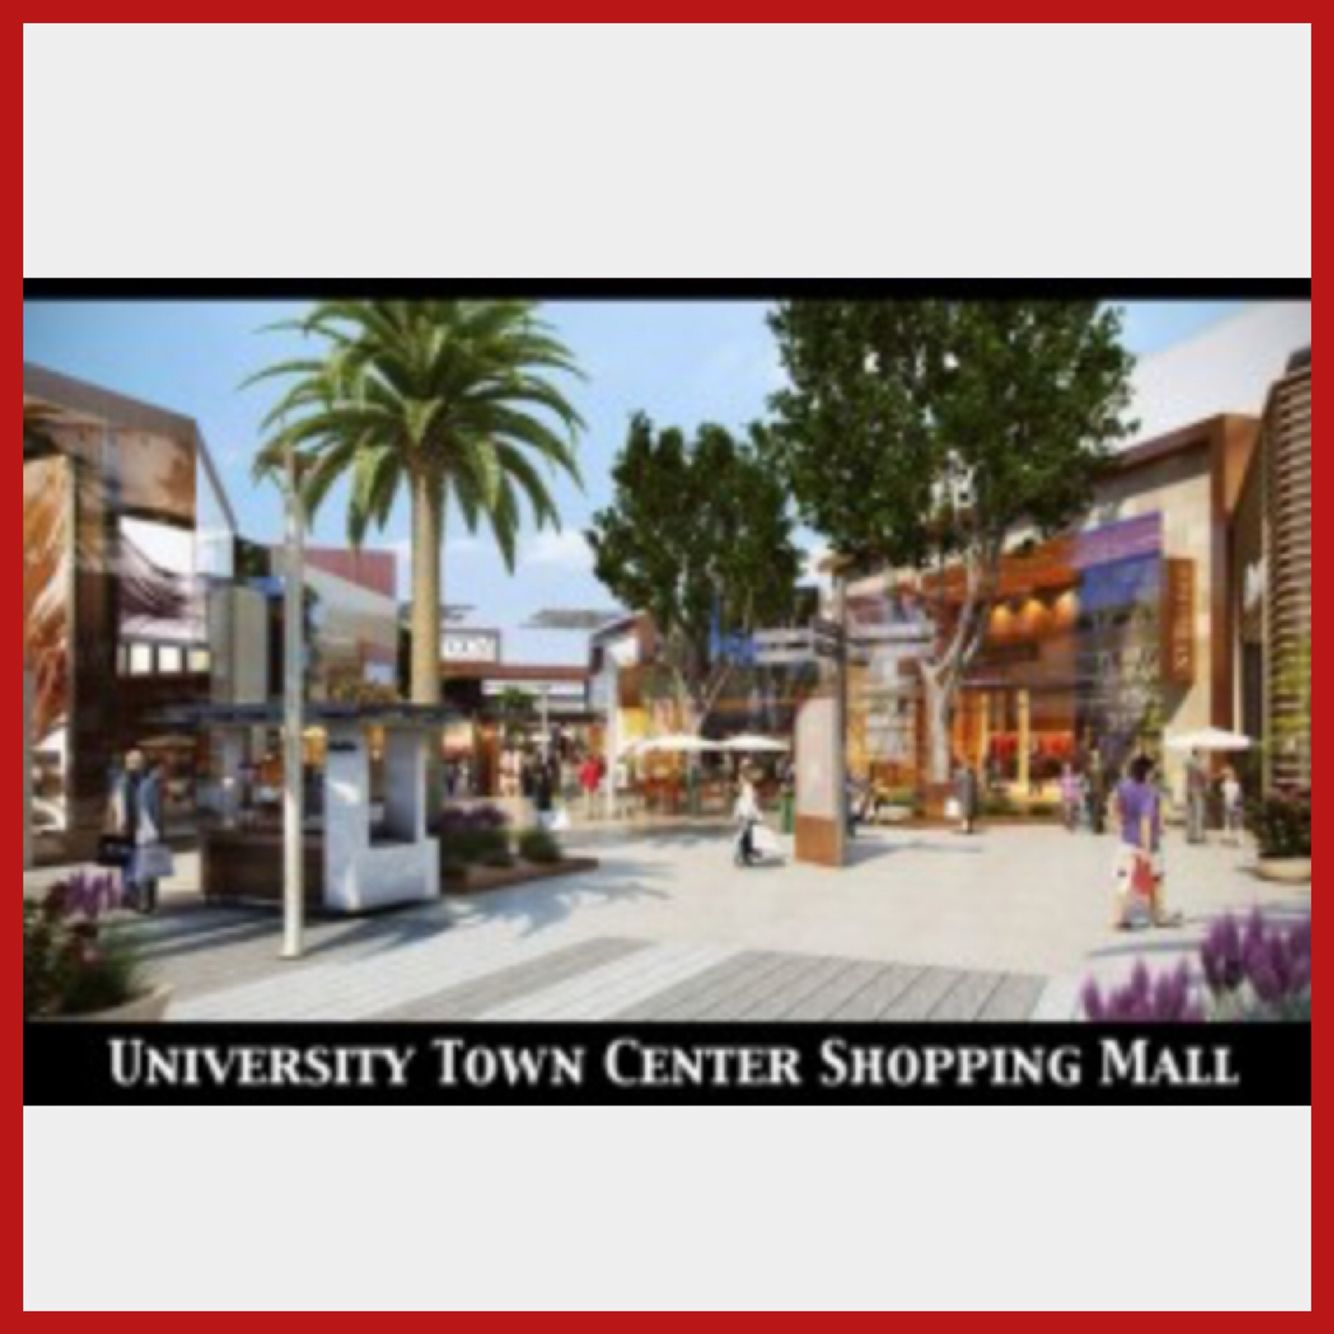 University of Town Center is an #Outdoor shopping center with upmarket chain #retailers, a #movie #theater & a #skating #rink. ☀️